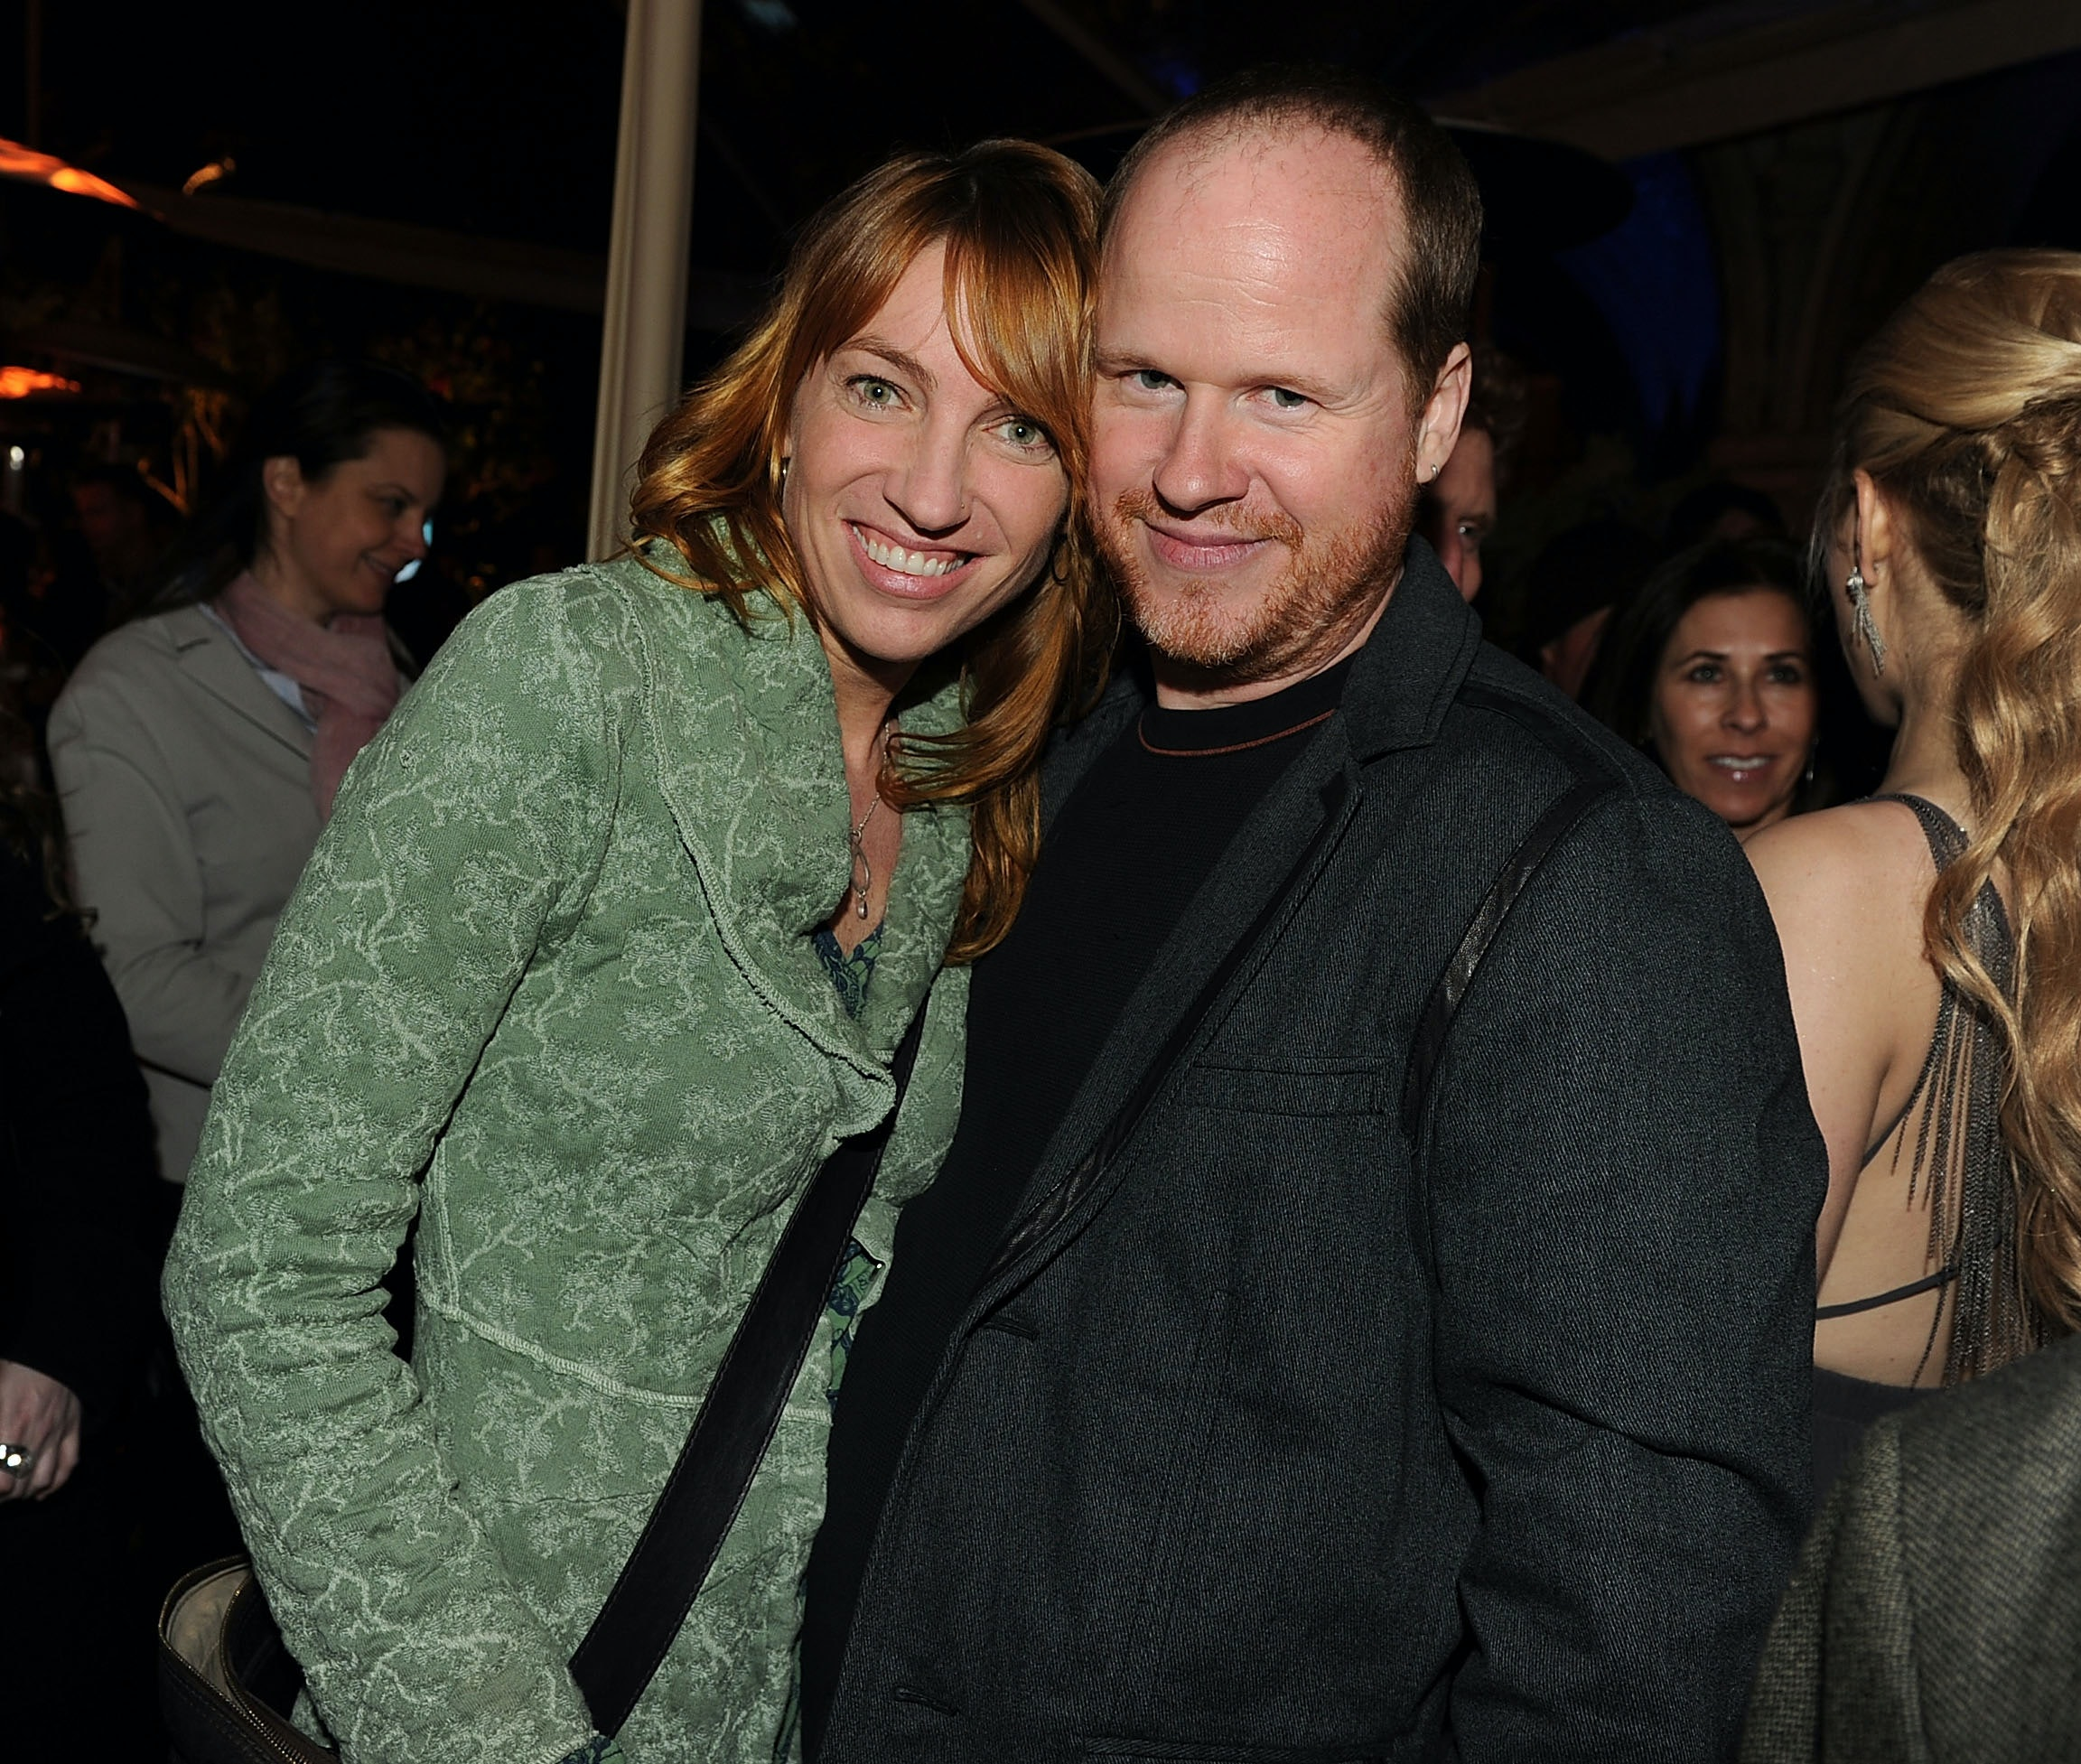 Is Joss Whedon a hypocrite?